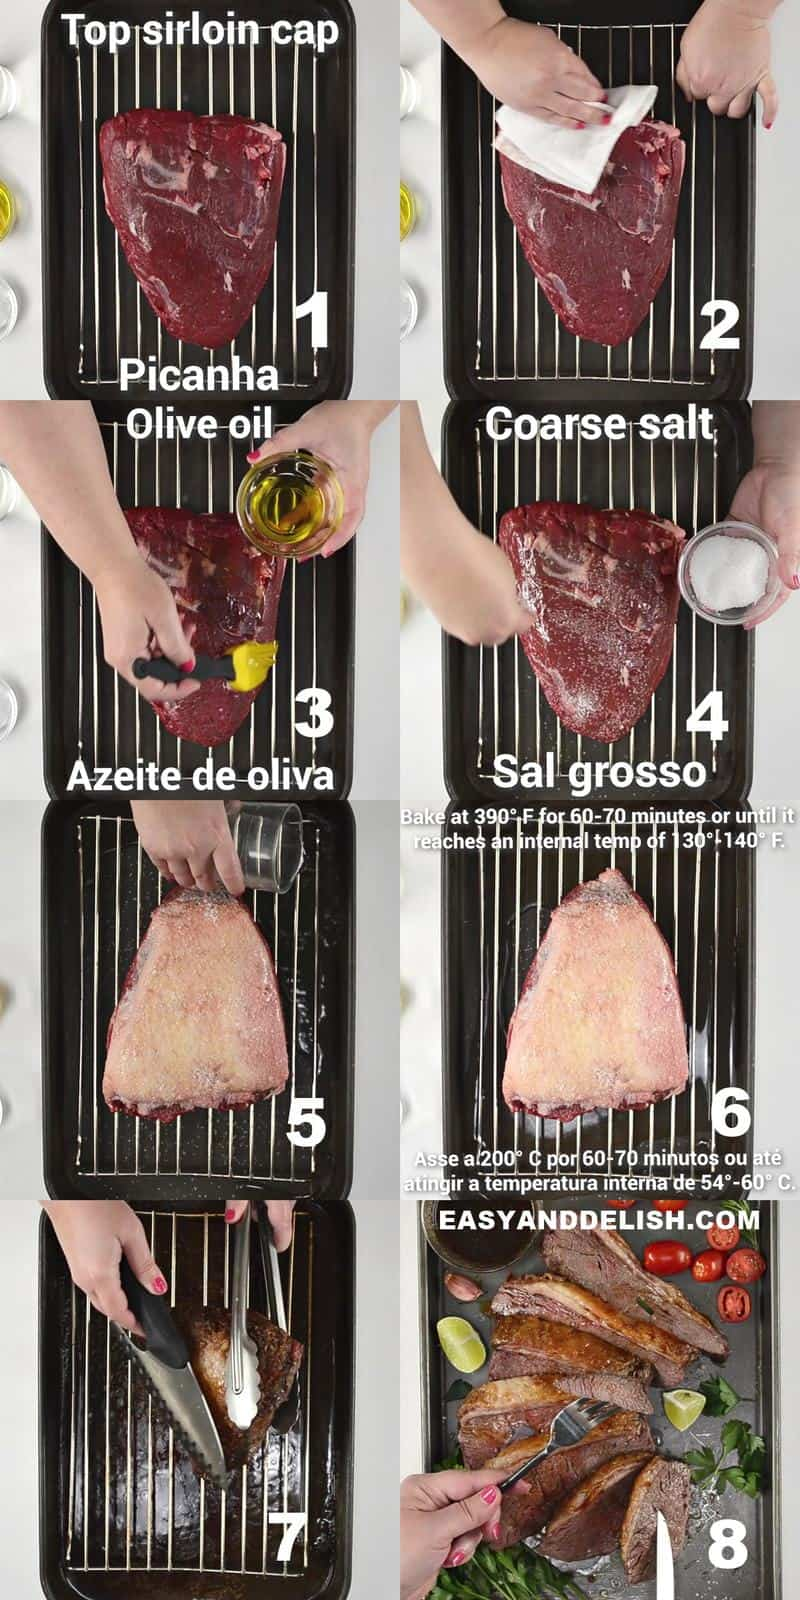 image collage showing how to amke picanha roast in 8 steps